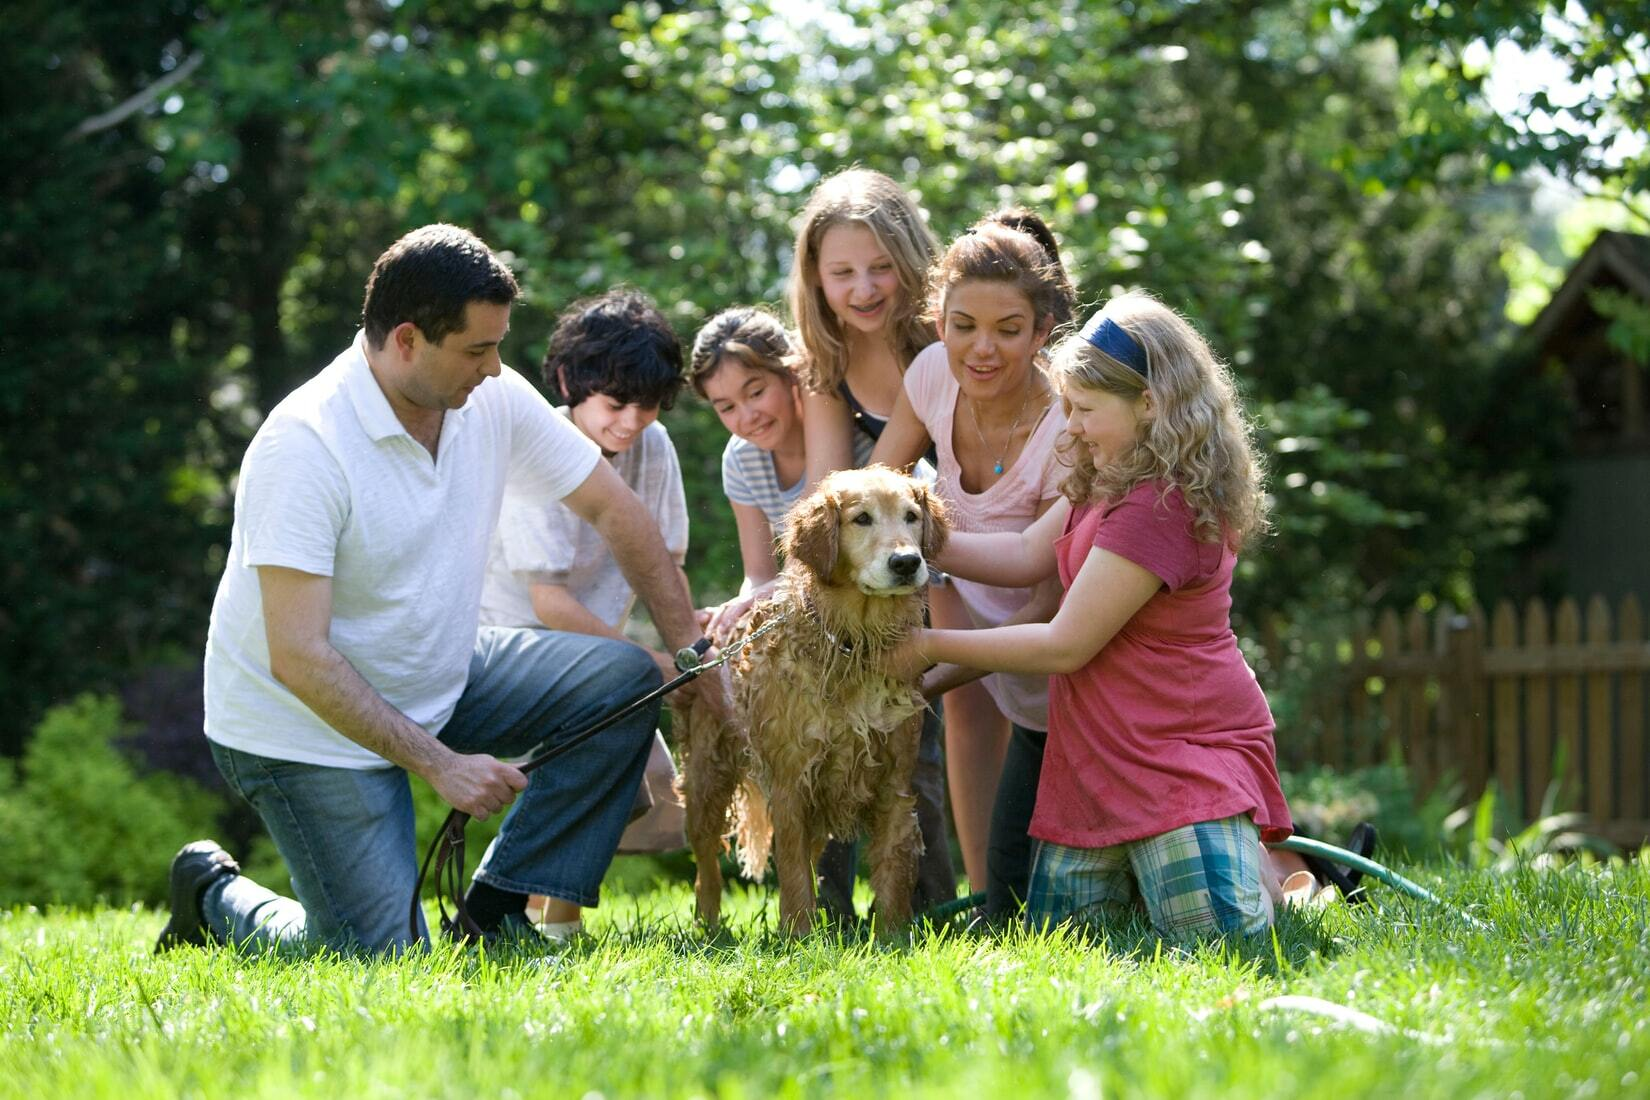 A family with 3 kids taking a good care of their dog